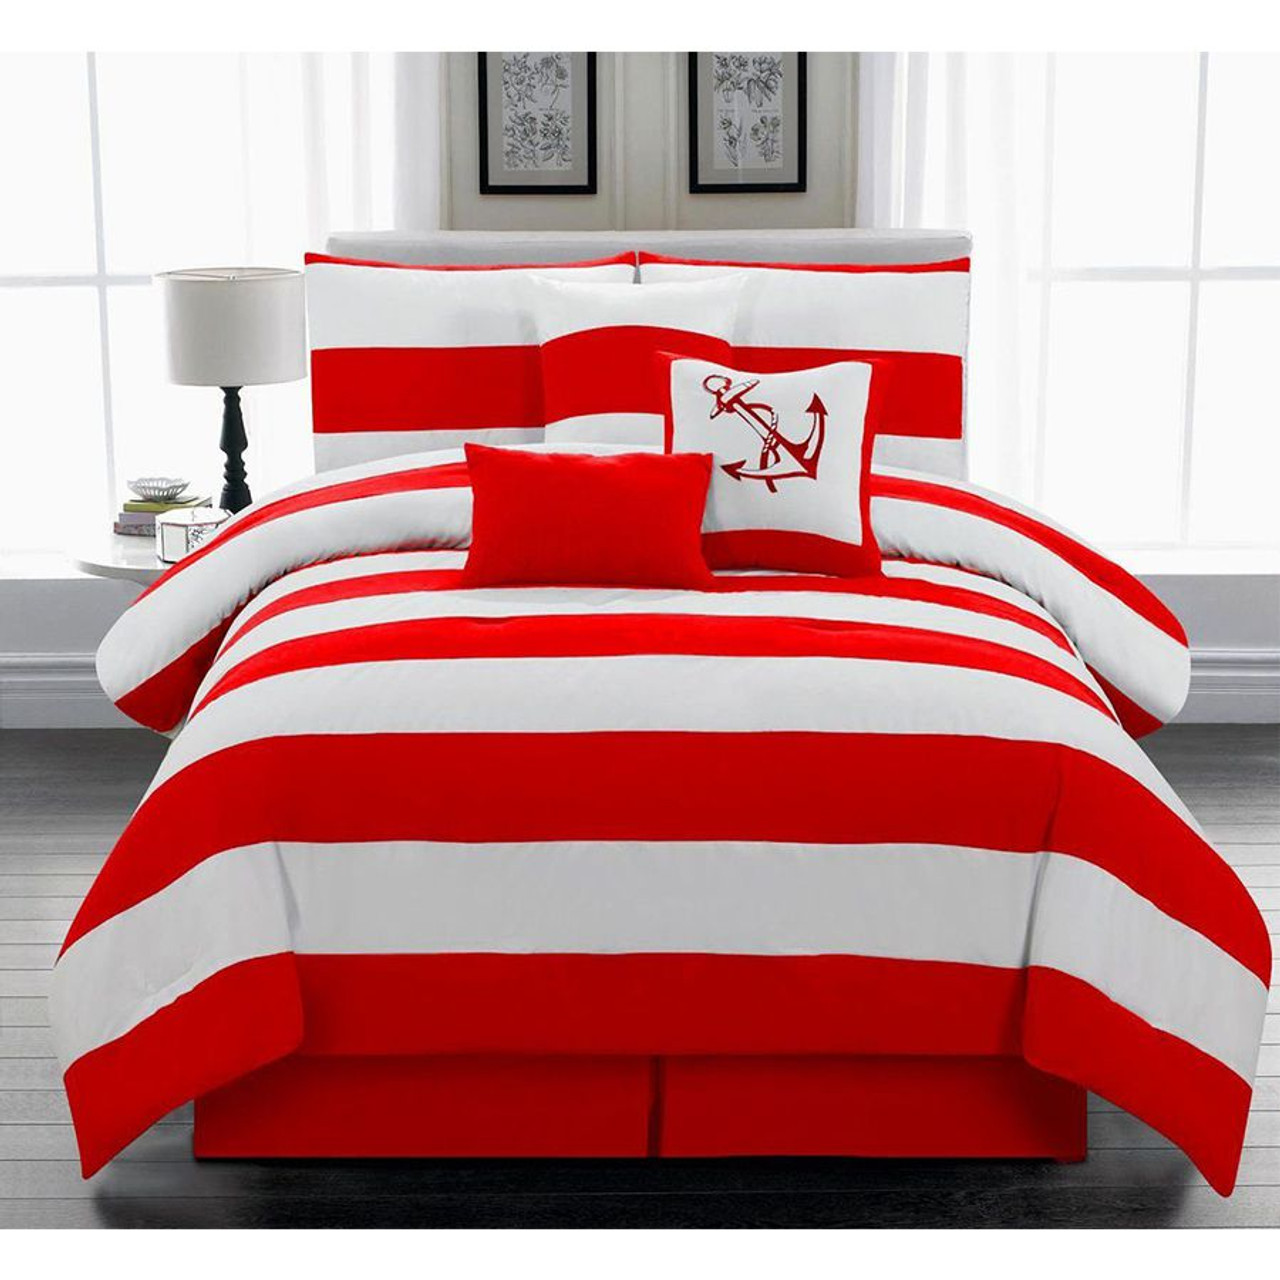 7 pc Microfiber Nautical Themed Comforter Set in Red